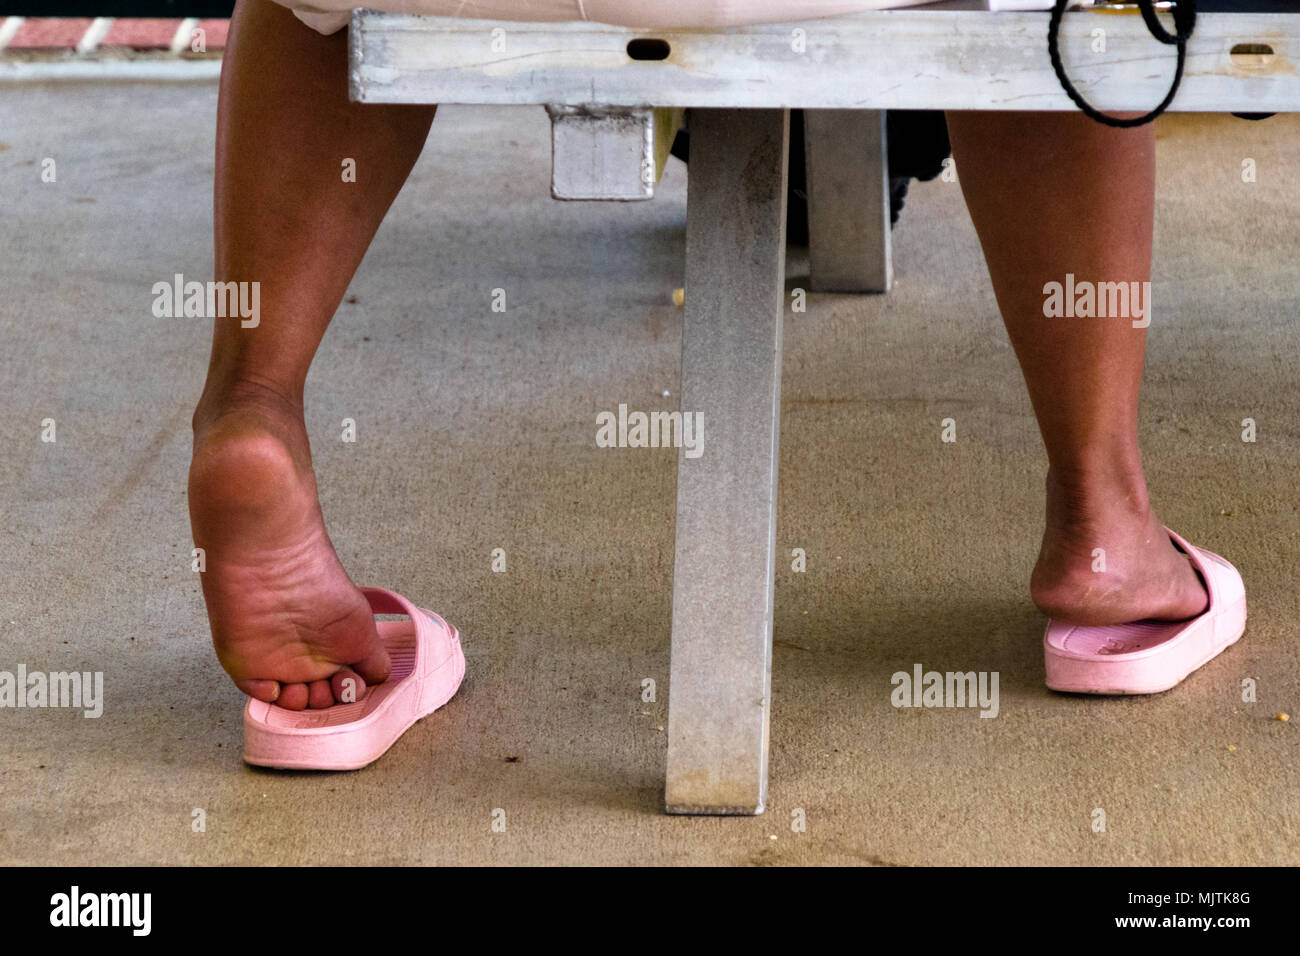 ac76be3b5b4bed A woman relaxing on a bench at a park inadvertently showing off dirty feet  in plastic